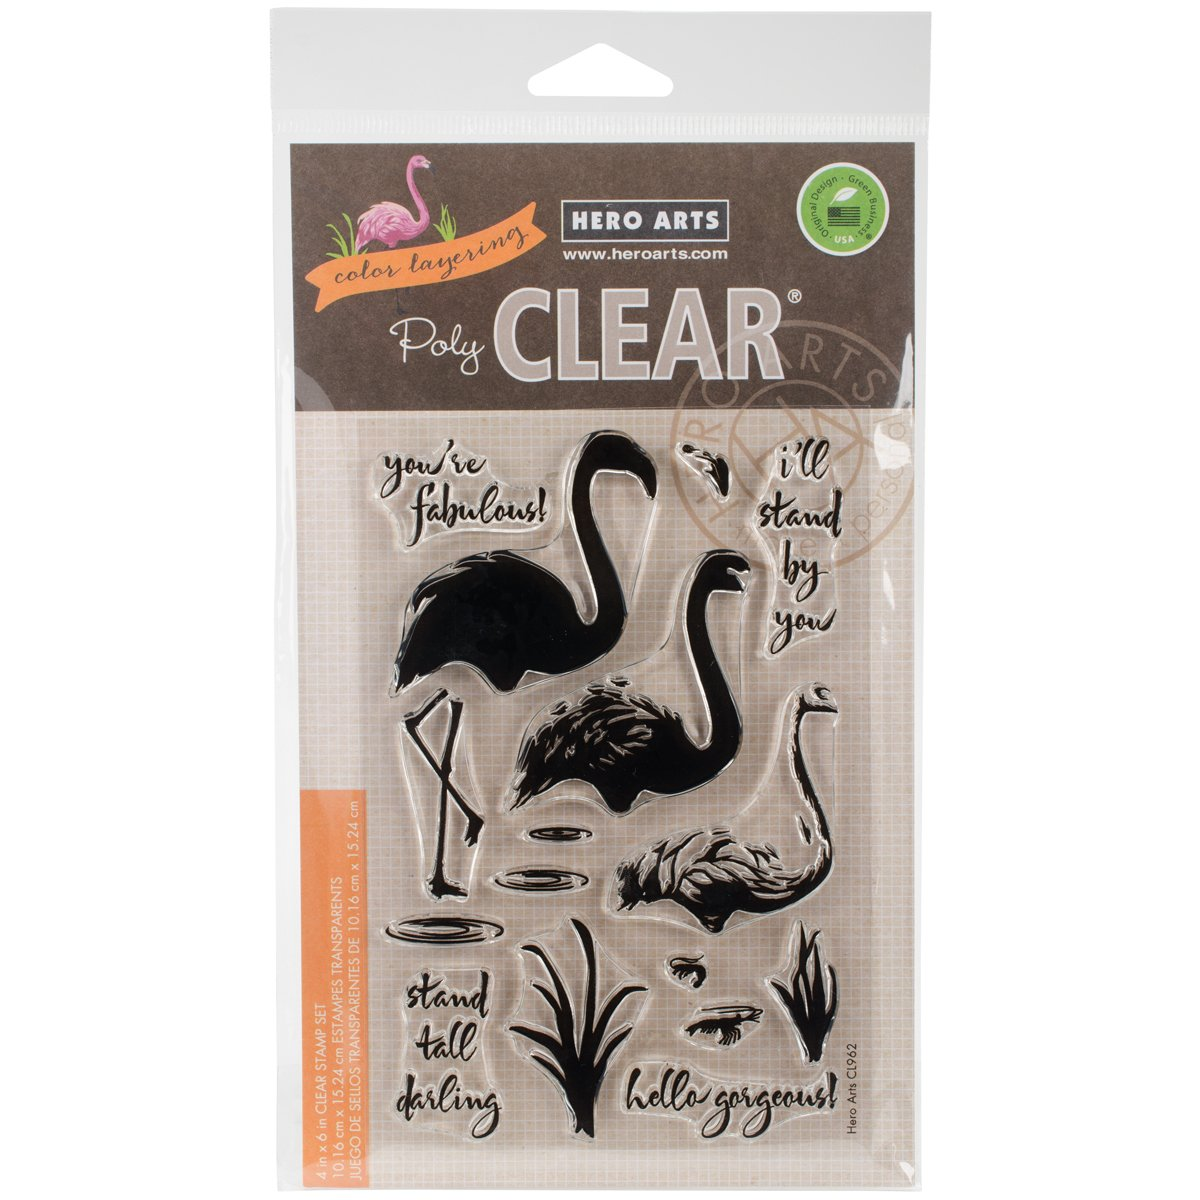 Hero Arts Cl962 Clear Stamps, Multi Colour, 4 X 6 Inch by Amazon